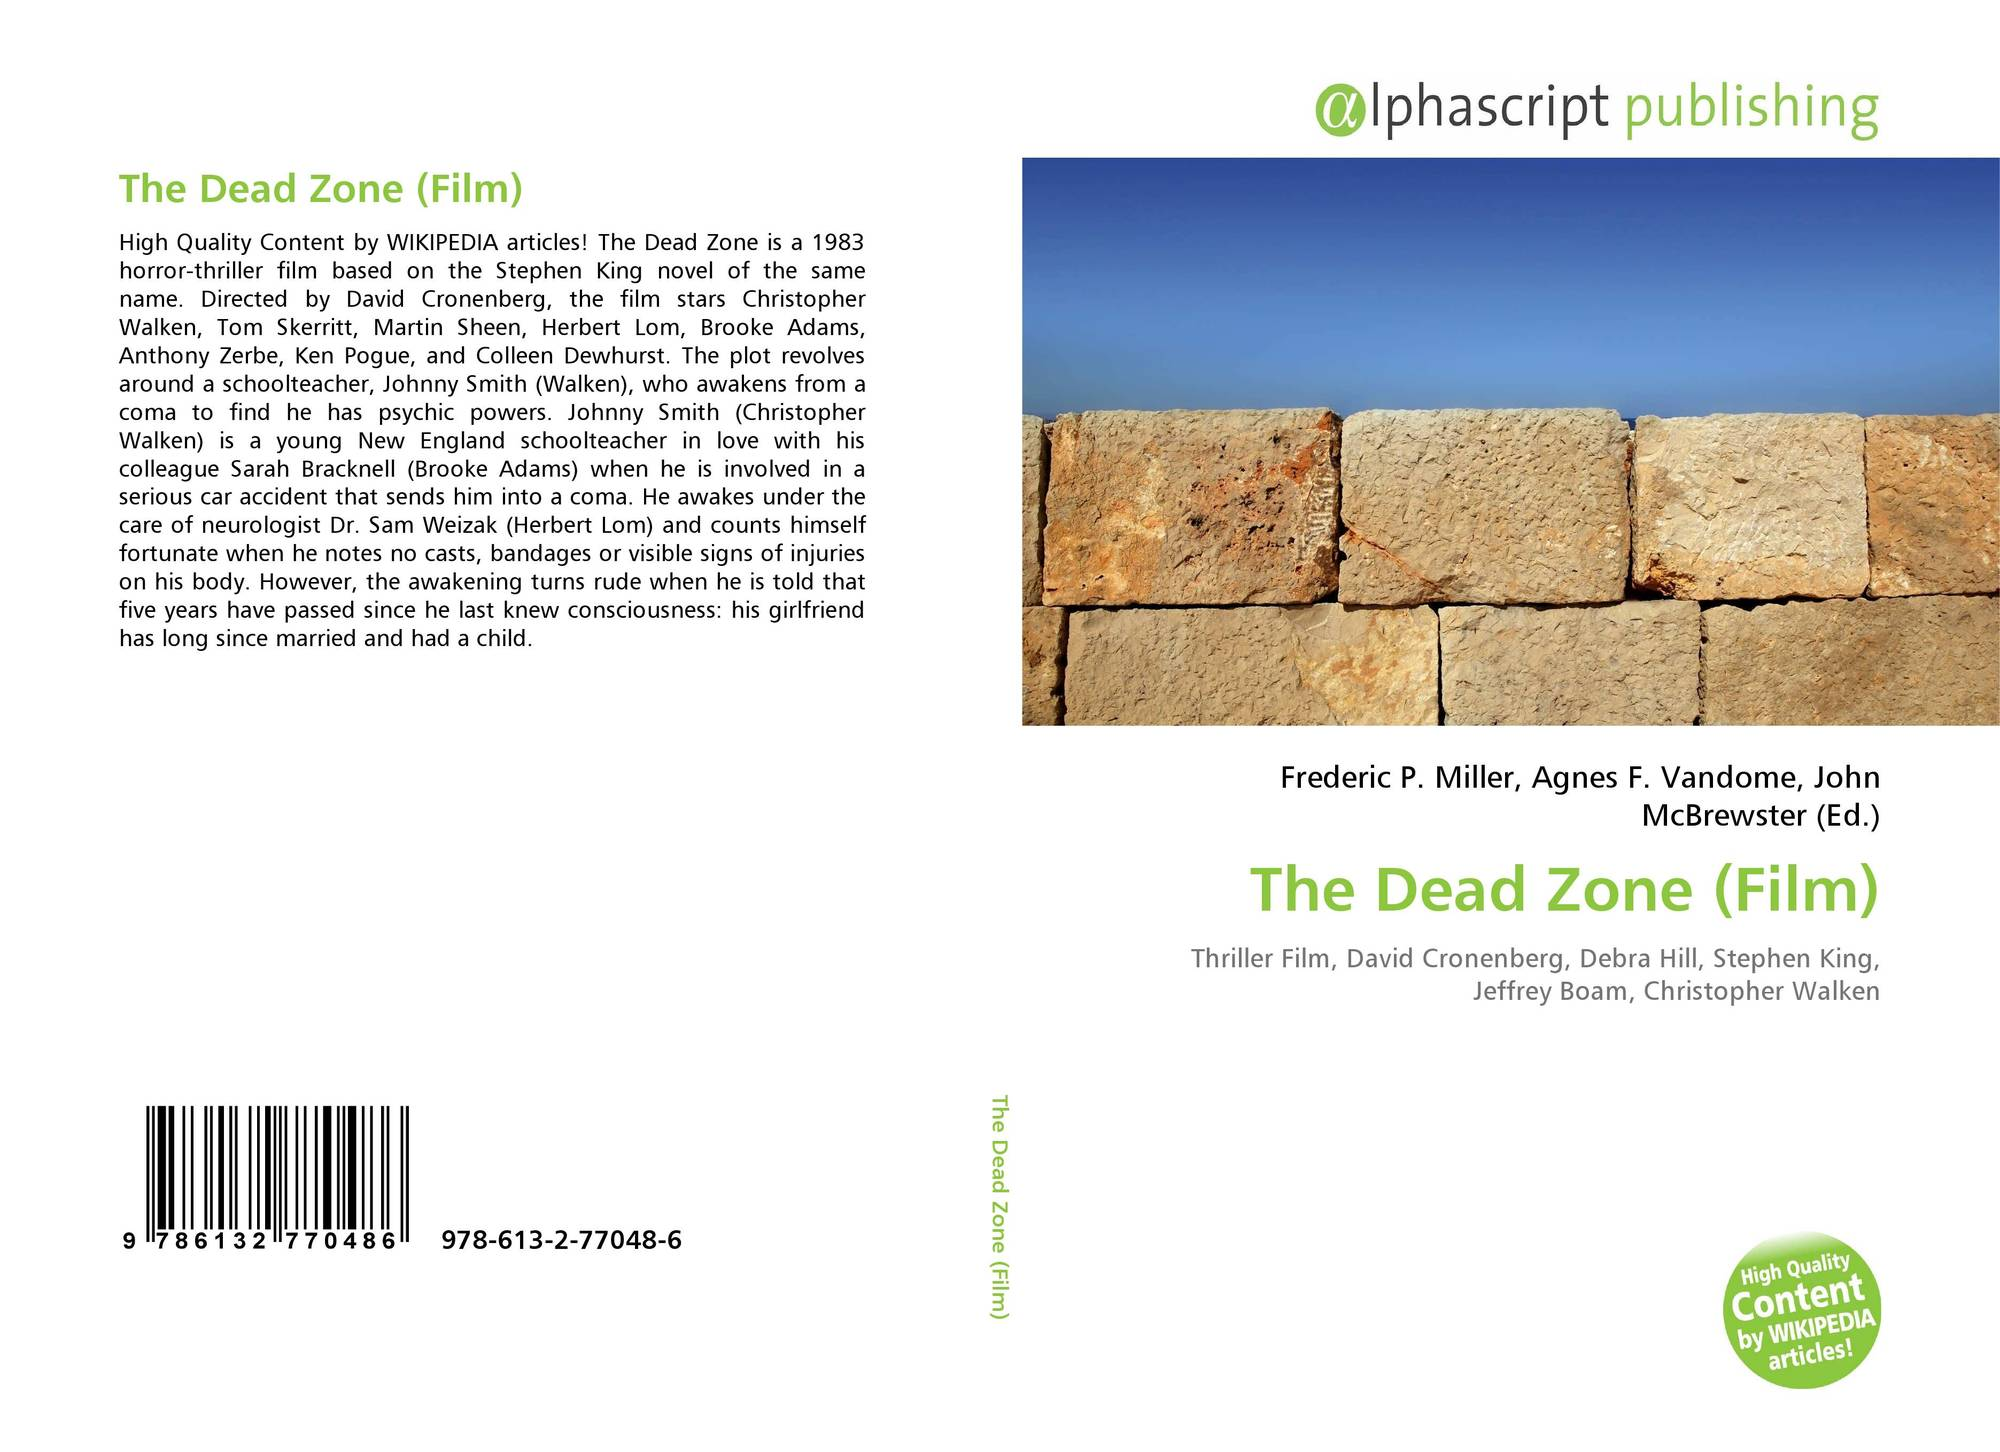 The Dead Zone (Film), 978-613-2-77048-6, 6132770488